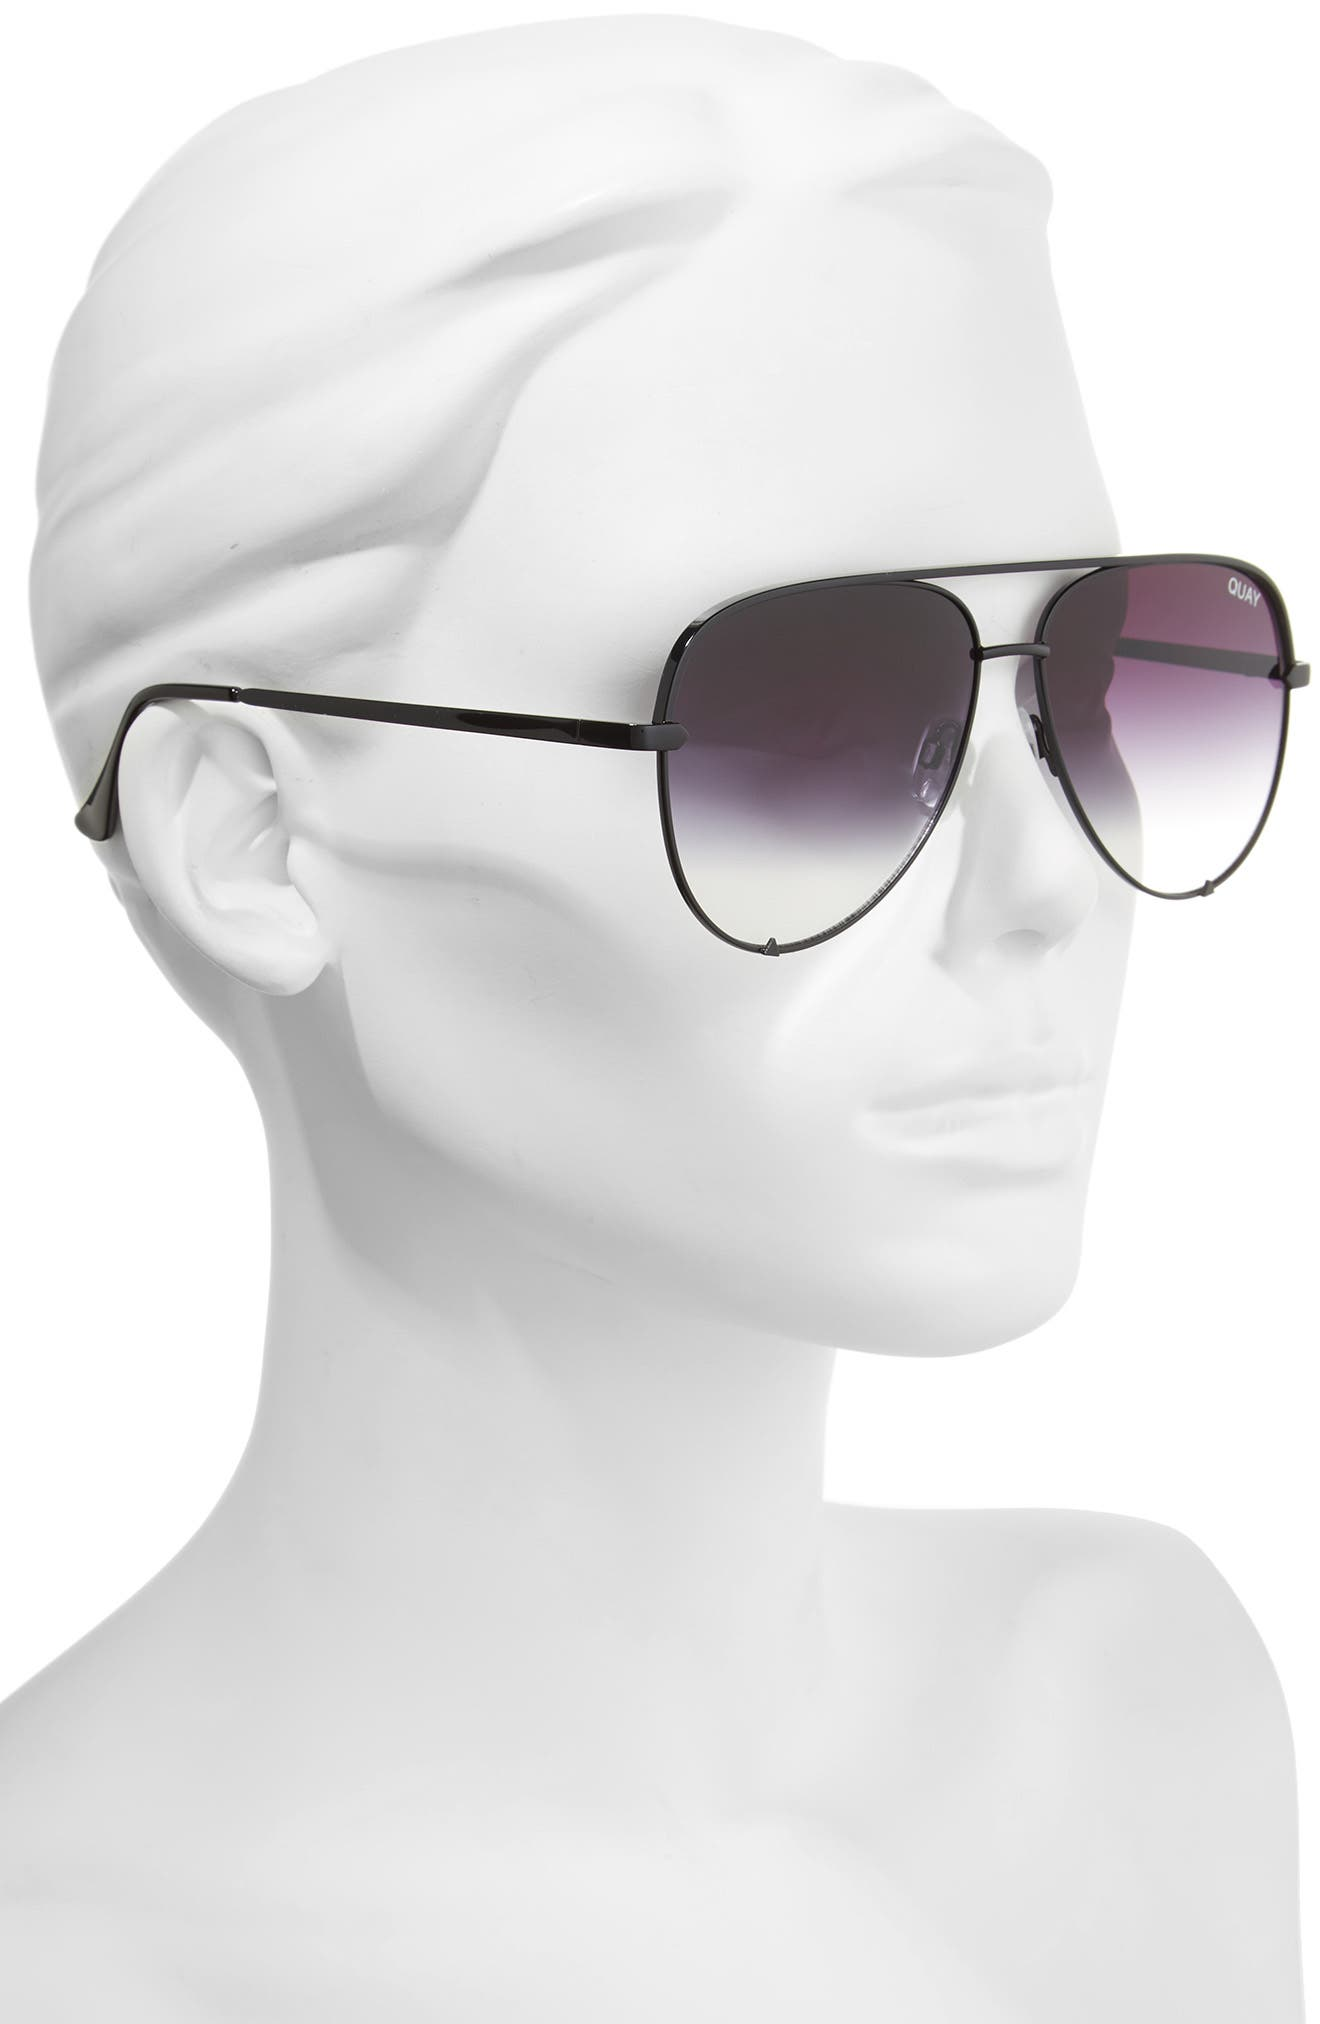 x Desi Perkins High Key 62mm Aviator Sunglasses,                             Alternate thumbnail 2, color,                             BLACK FADE TO CLEAR